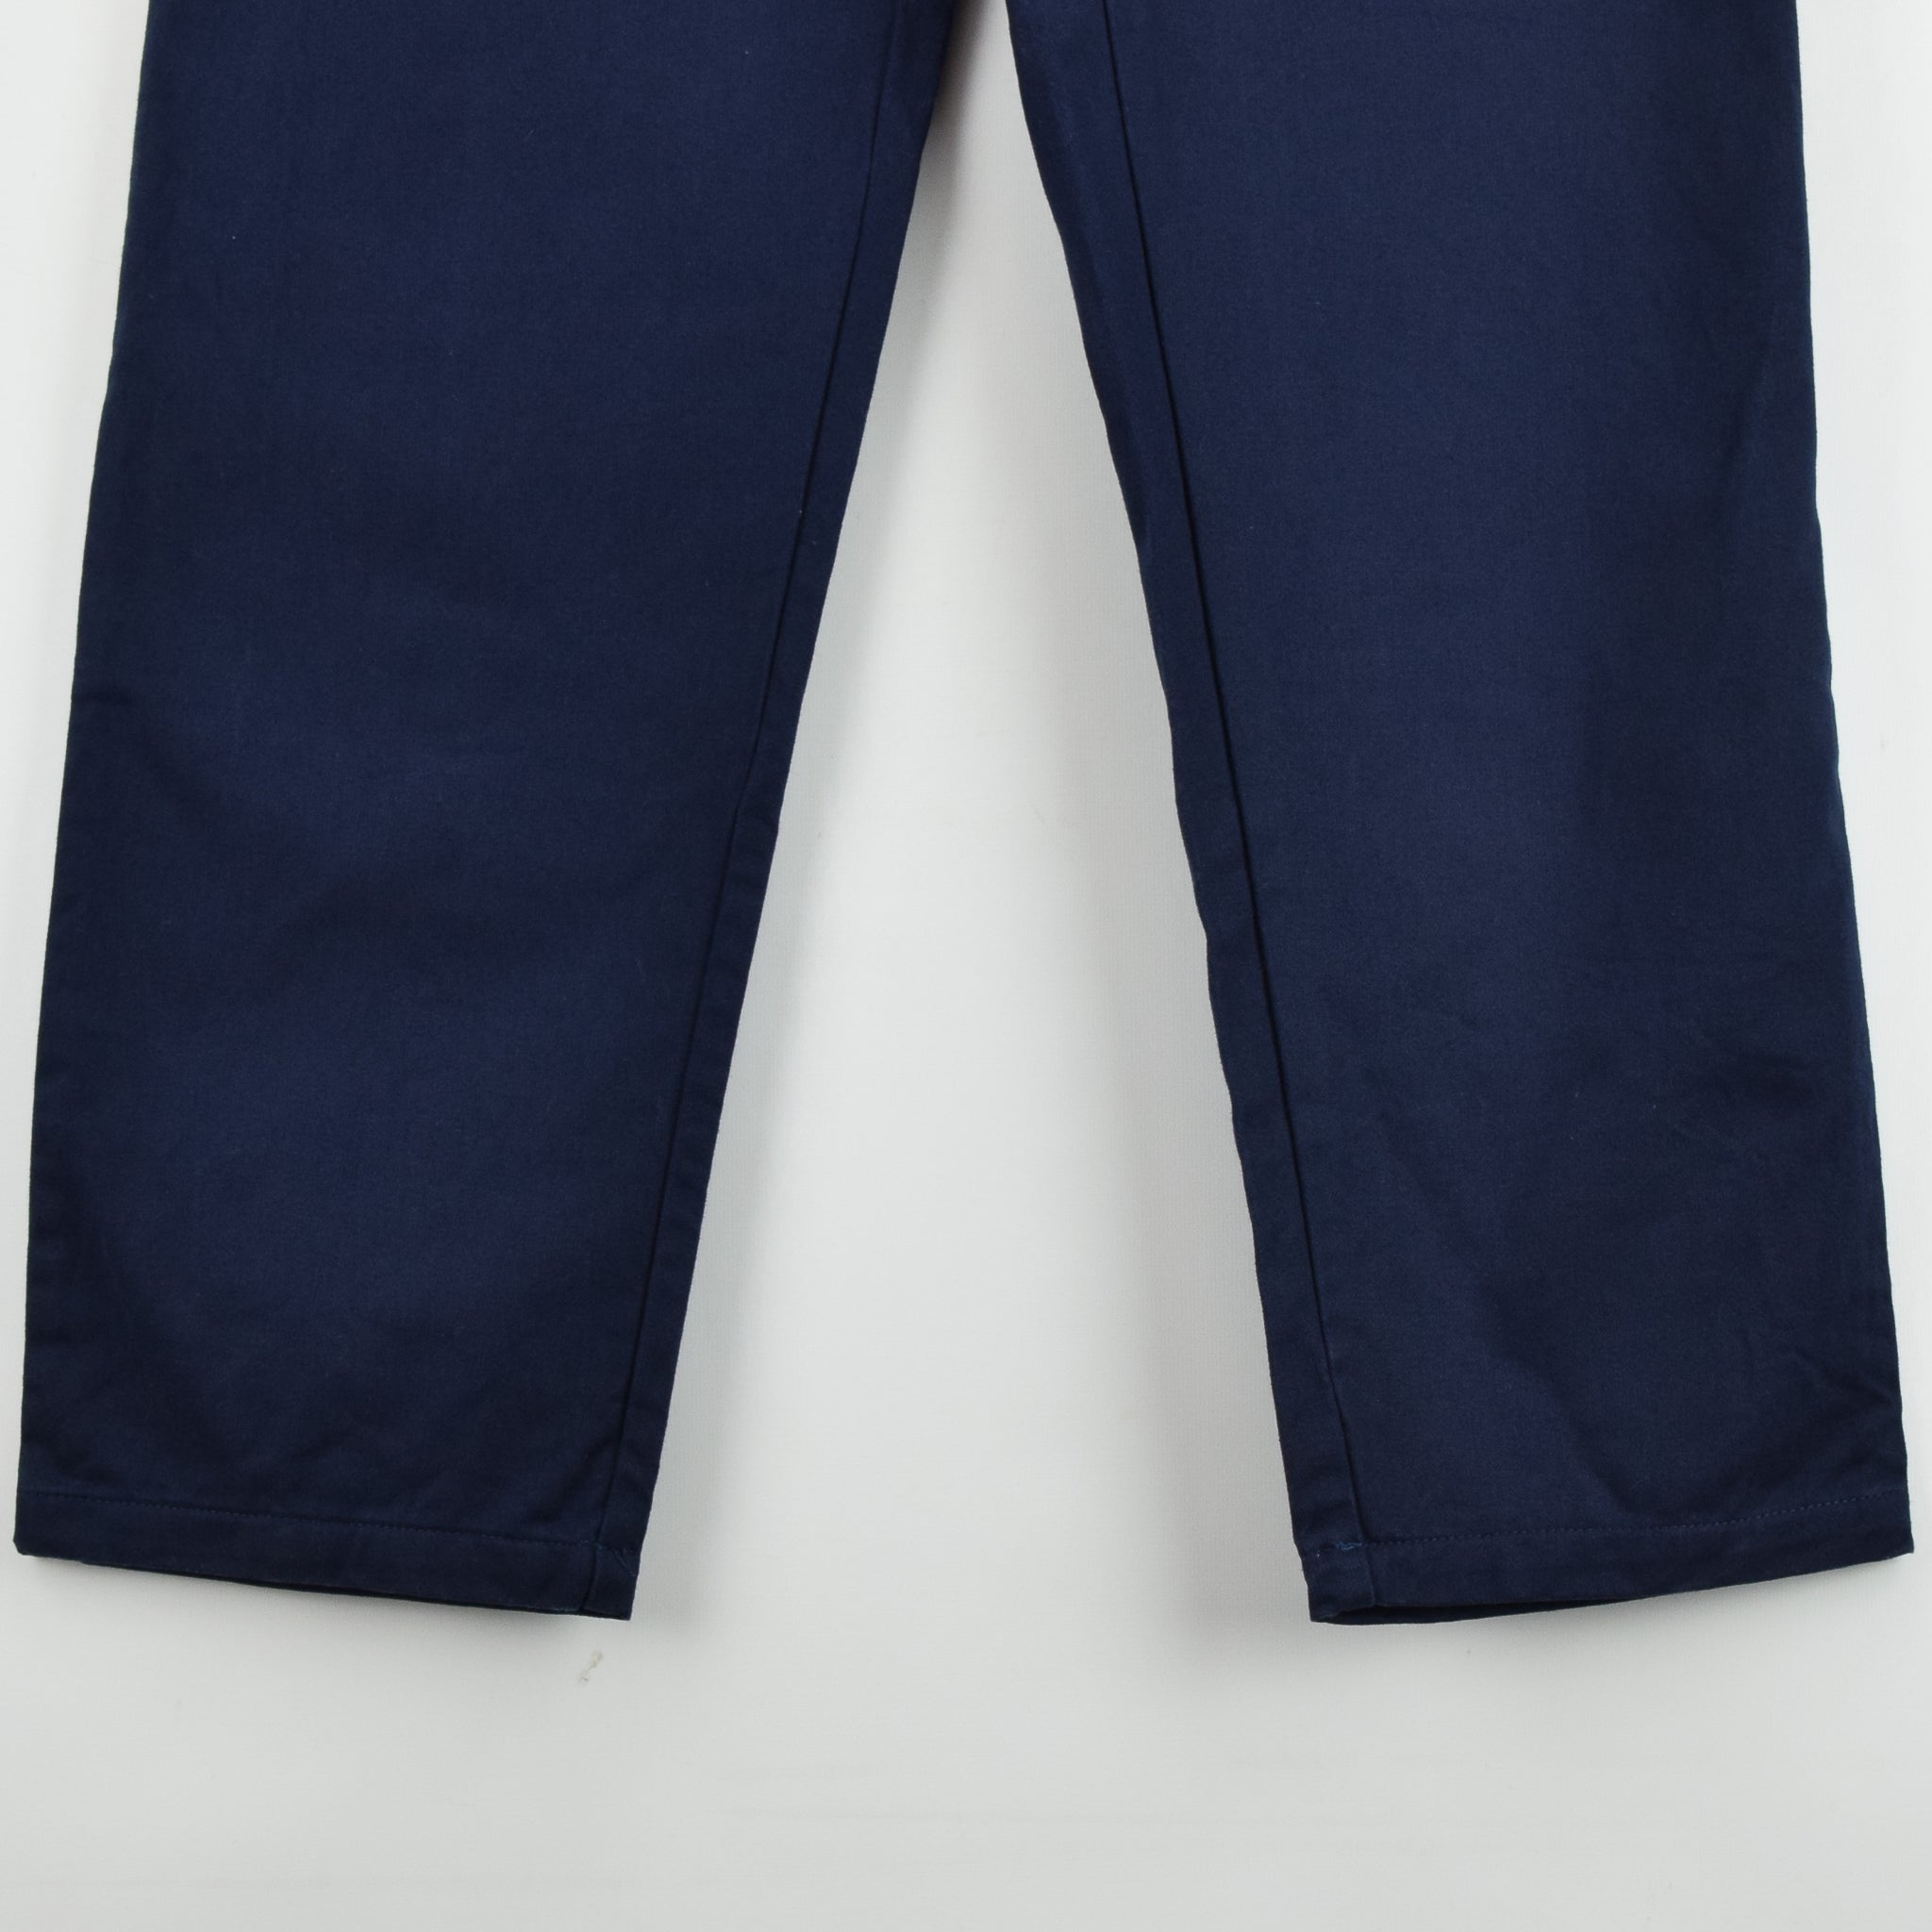 Vintage Deadstock Blue French Style Work Utility Trousers Italy Made 34 W 34 L front hem